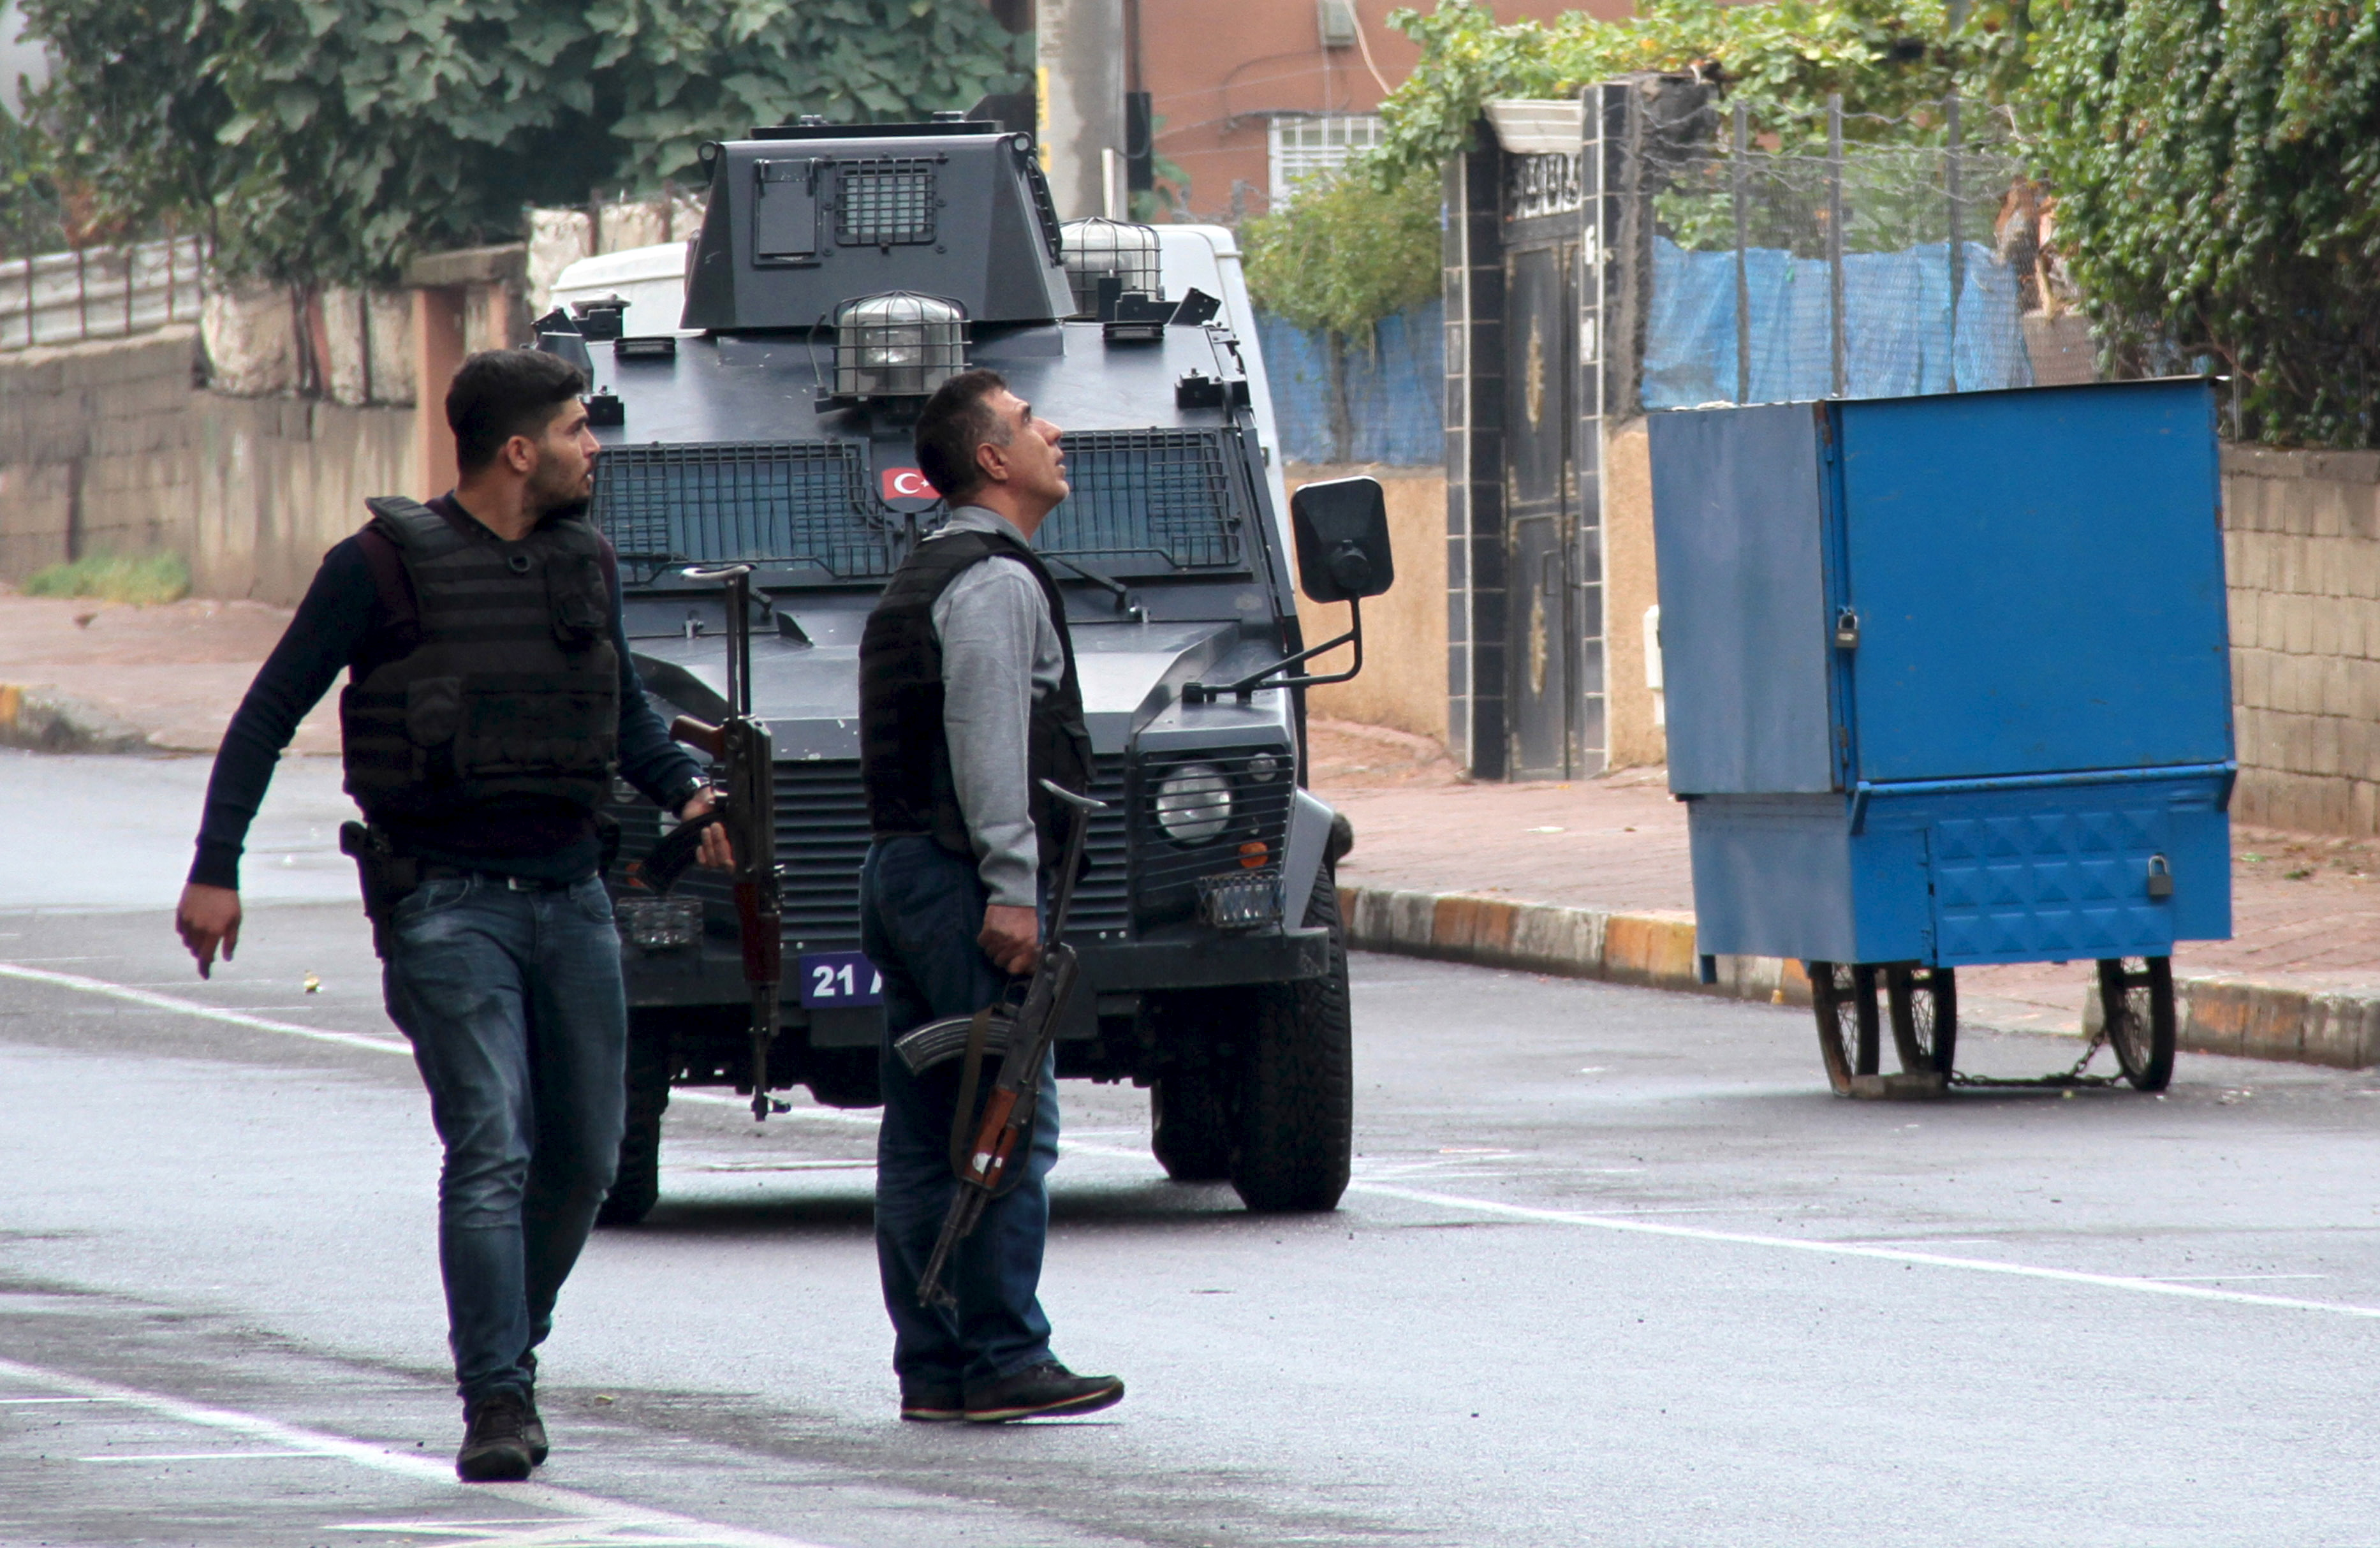 Turkish police special forces take part in a security operation in Diyarbakir, Turkey, October 26, 2015, where two Turkish policemen and seven Islamic State militants were killed after police raided more than a dozen houses in the region.